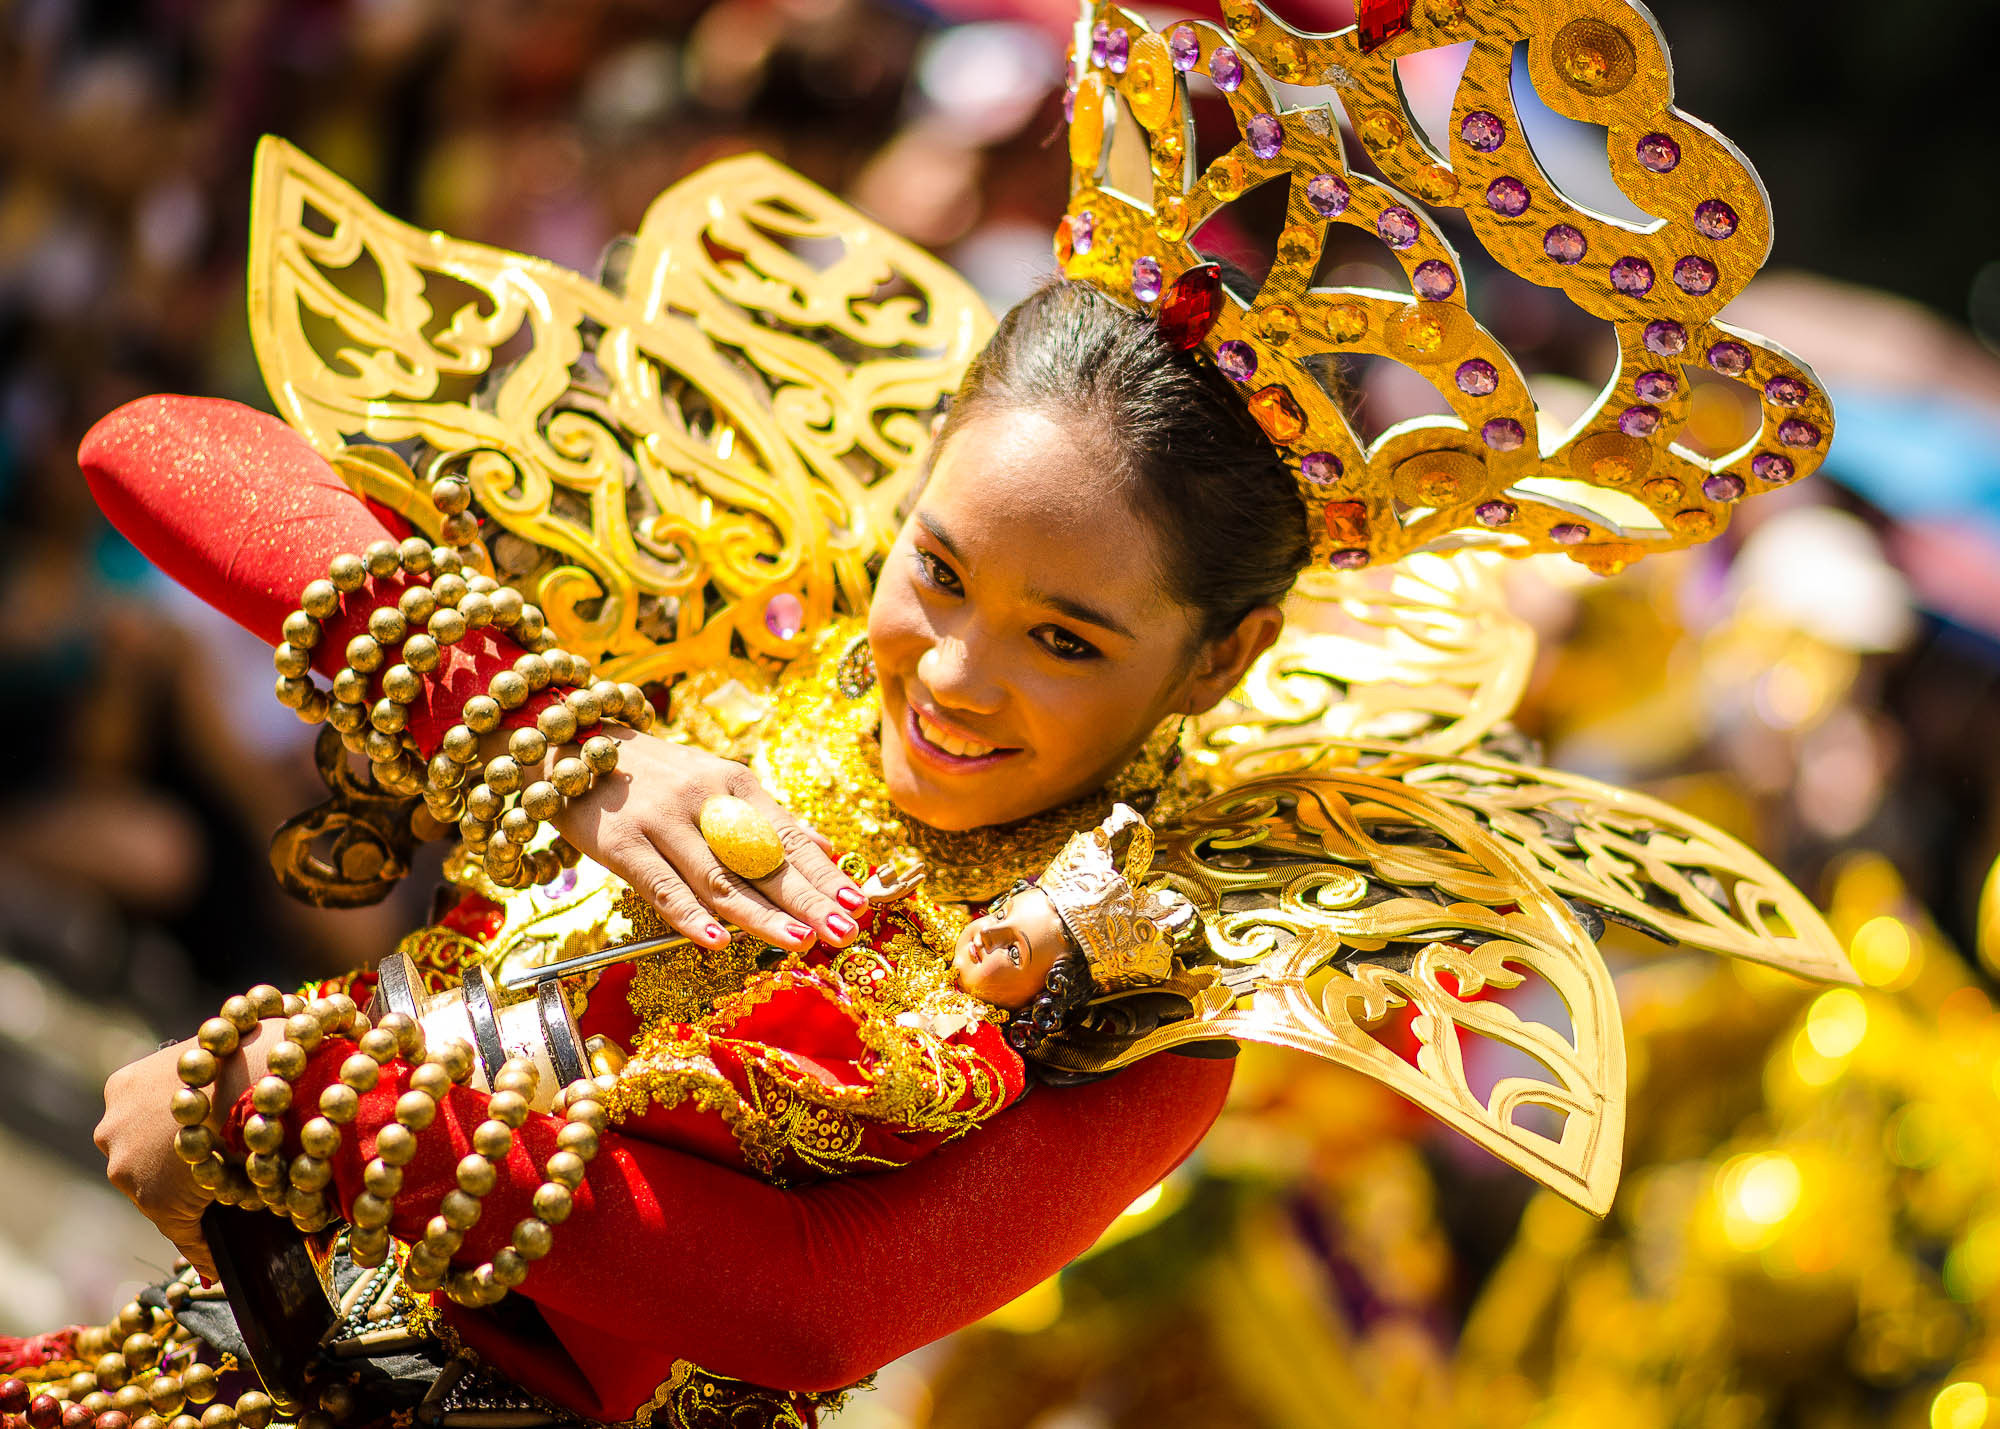 Photograph The Sinulog Queen by Jupert Sison on 500px